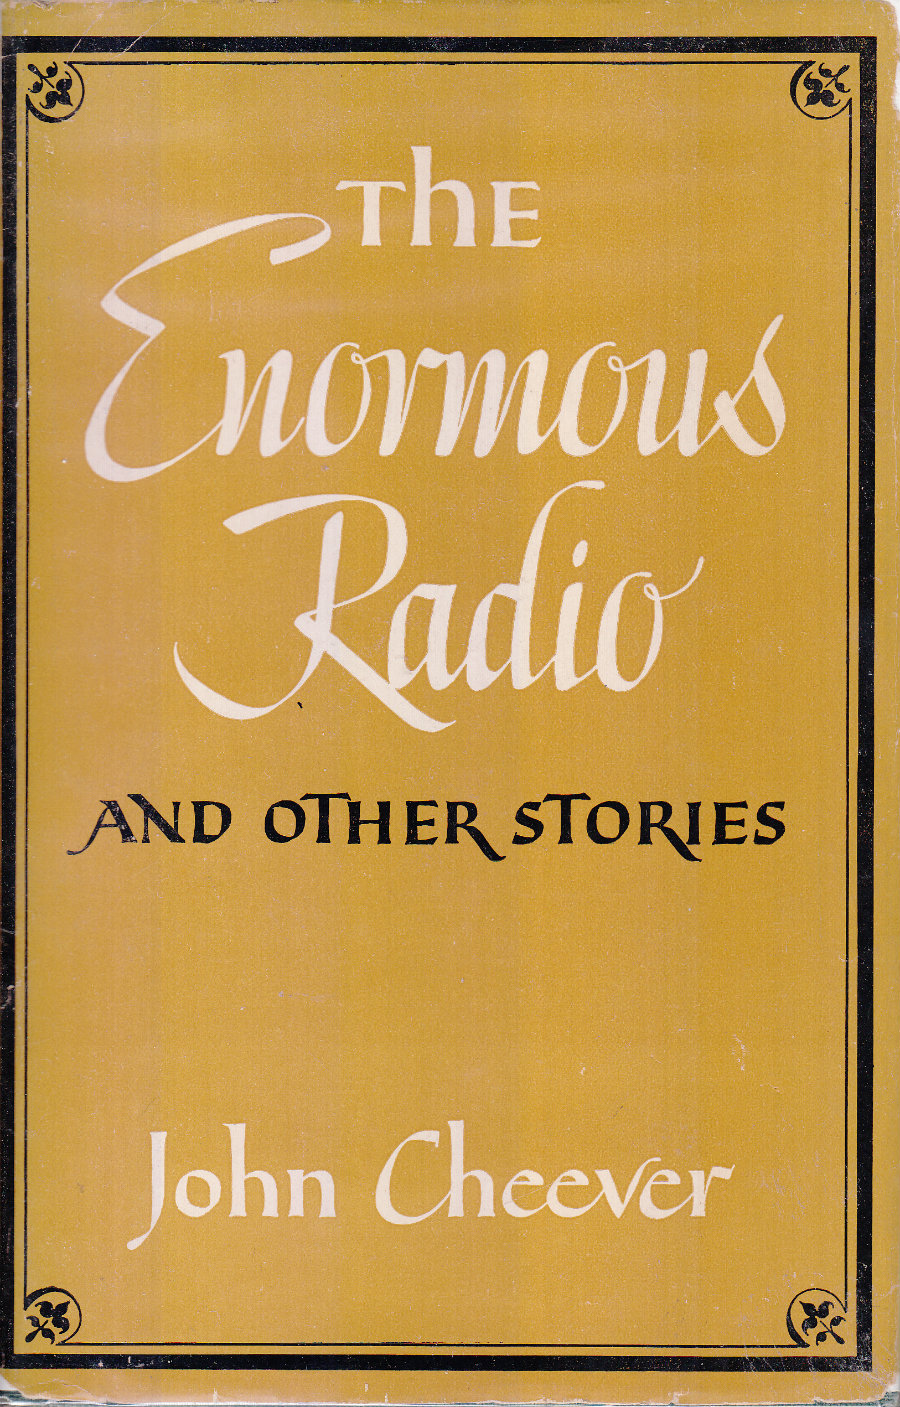 The Enormous Radio: and other stories, Cheever, John